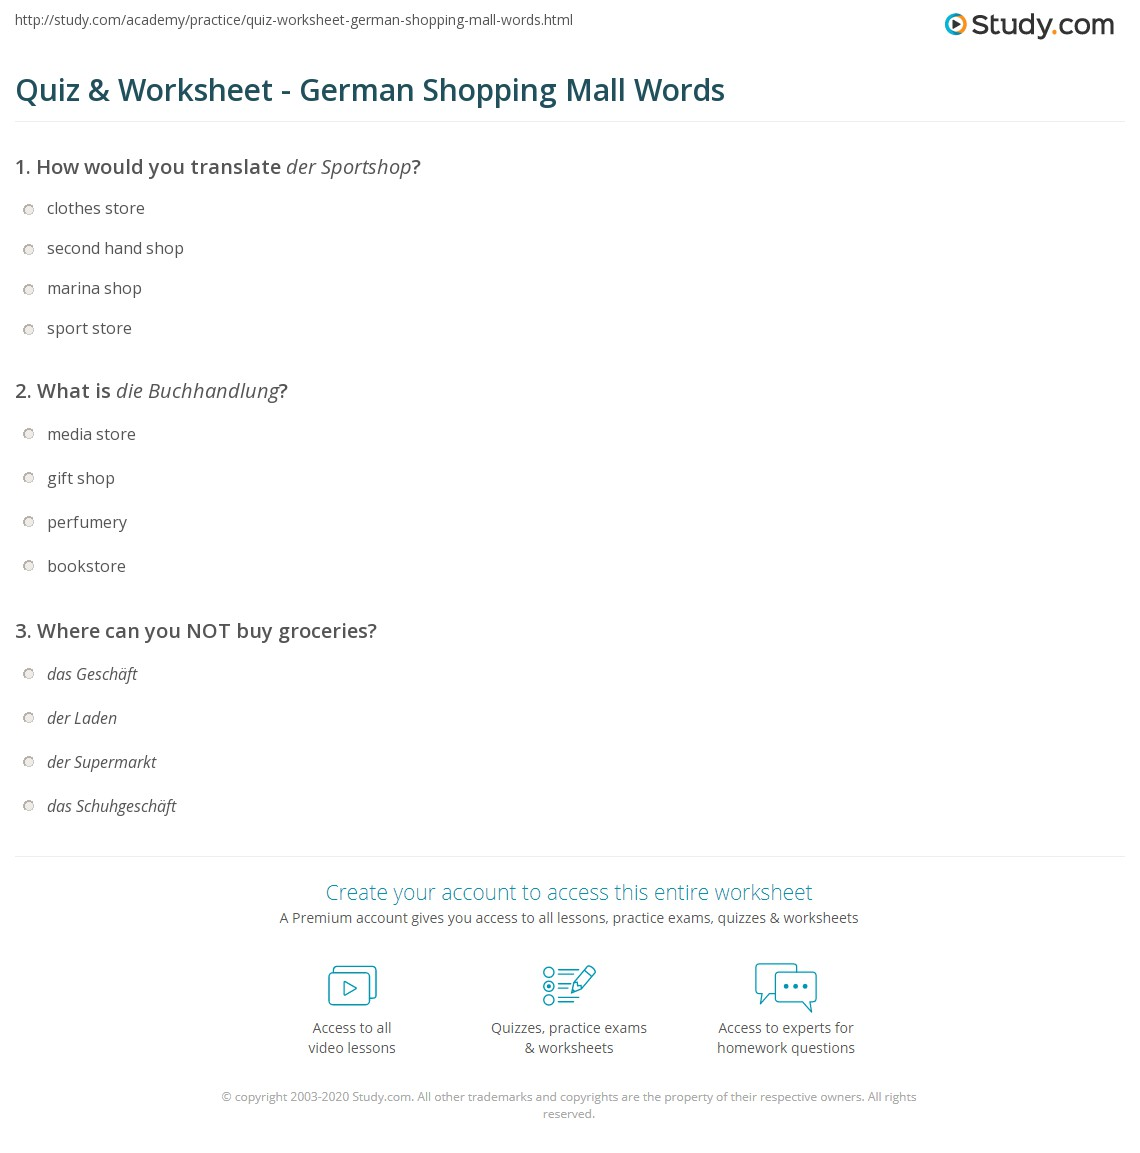 worksheet Shopping Worksheets quiz worksheet german shopping mall words study com print vocabulary worksheet